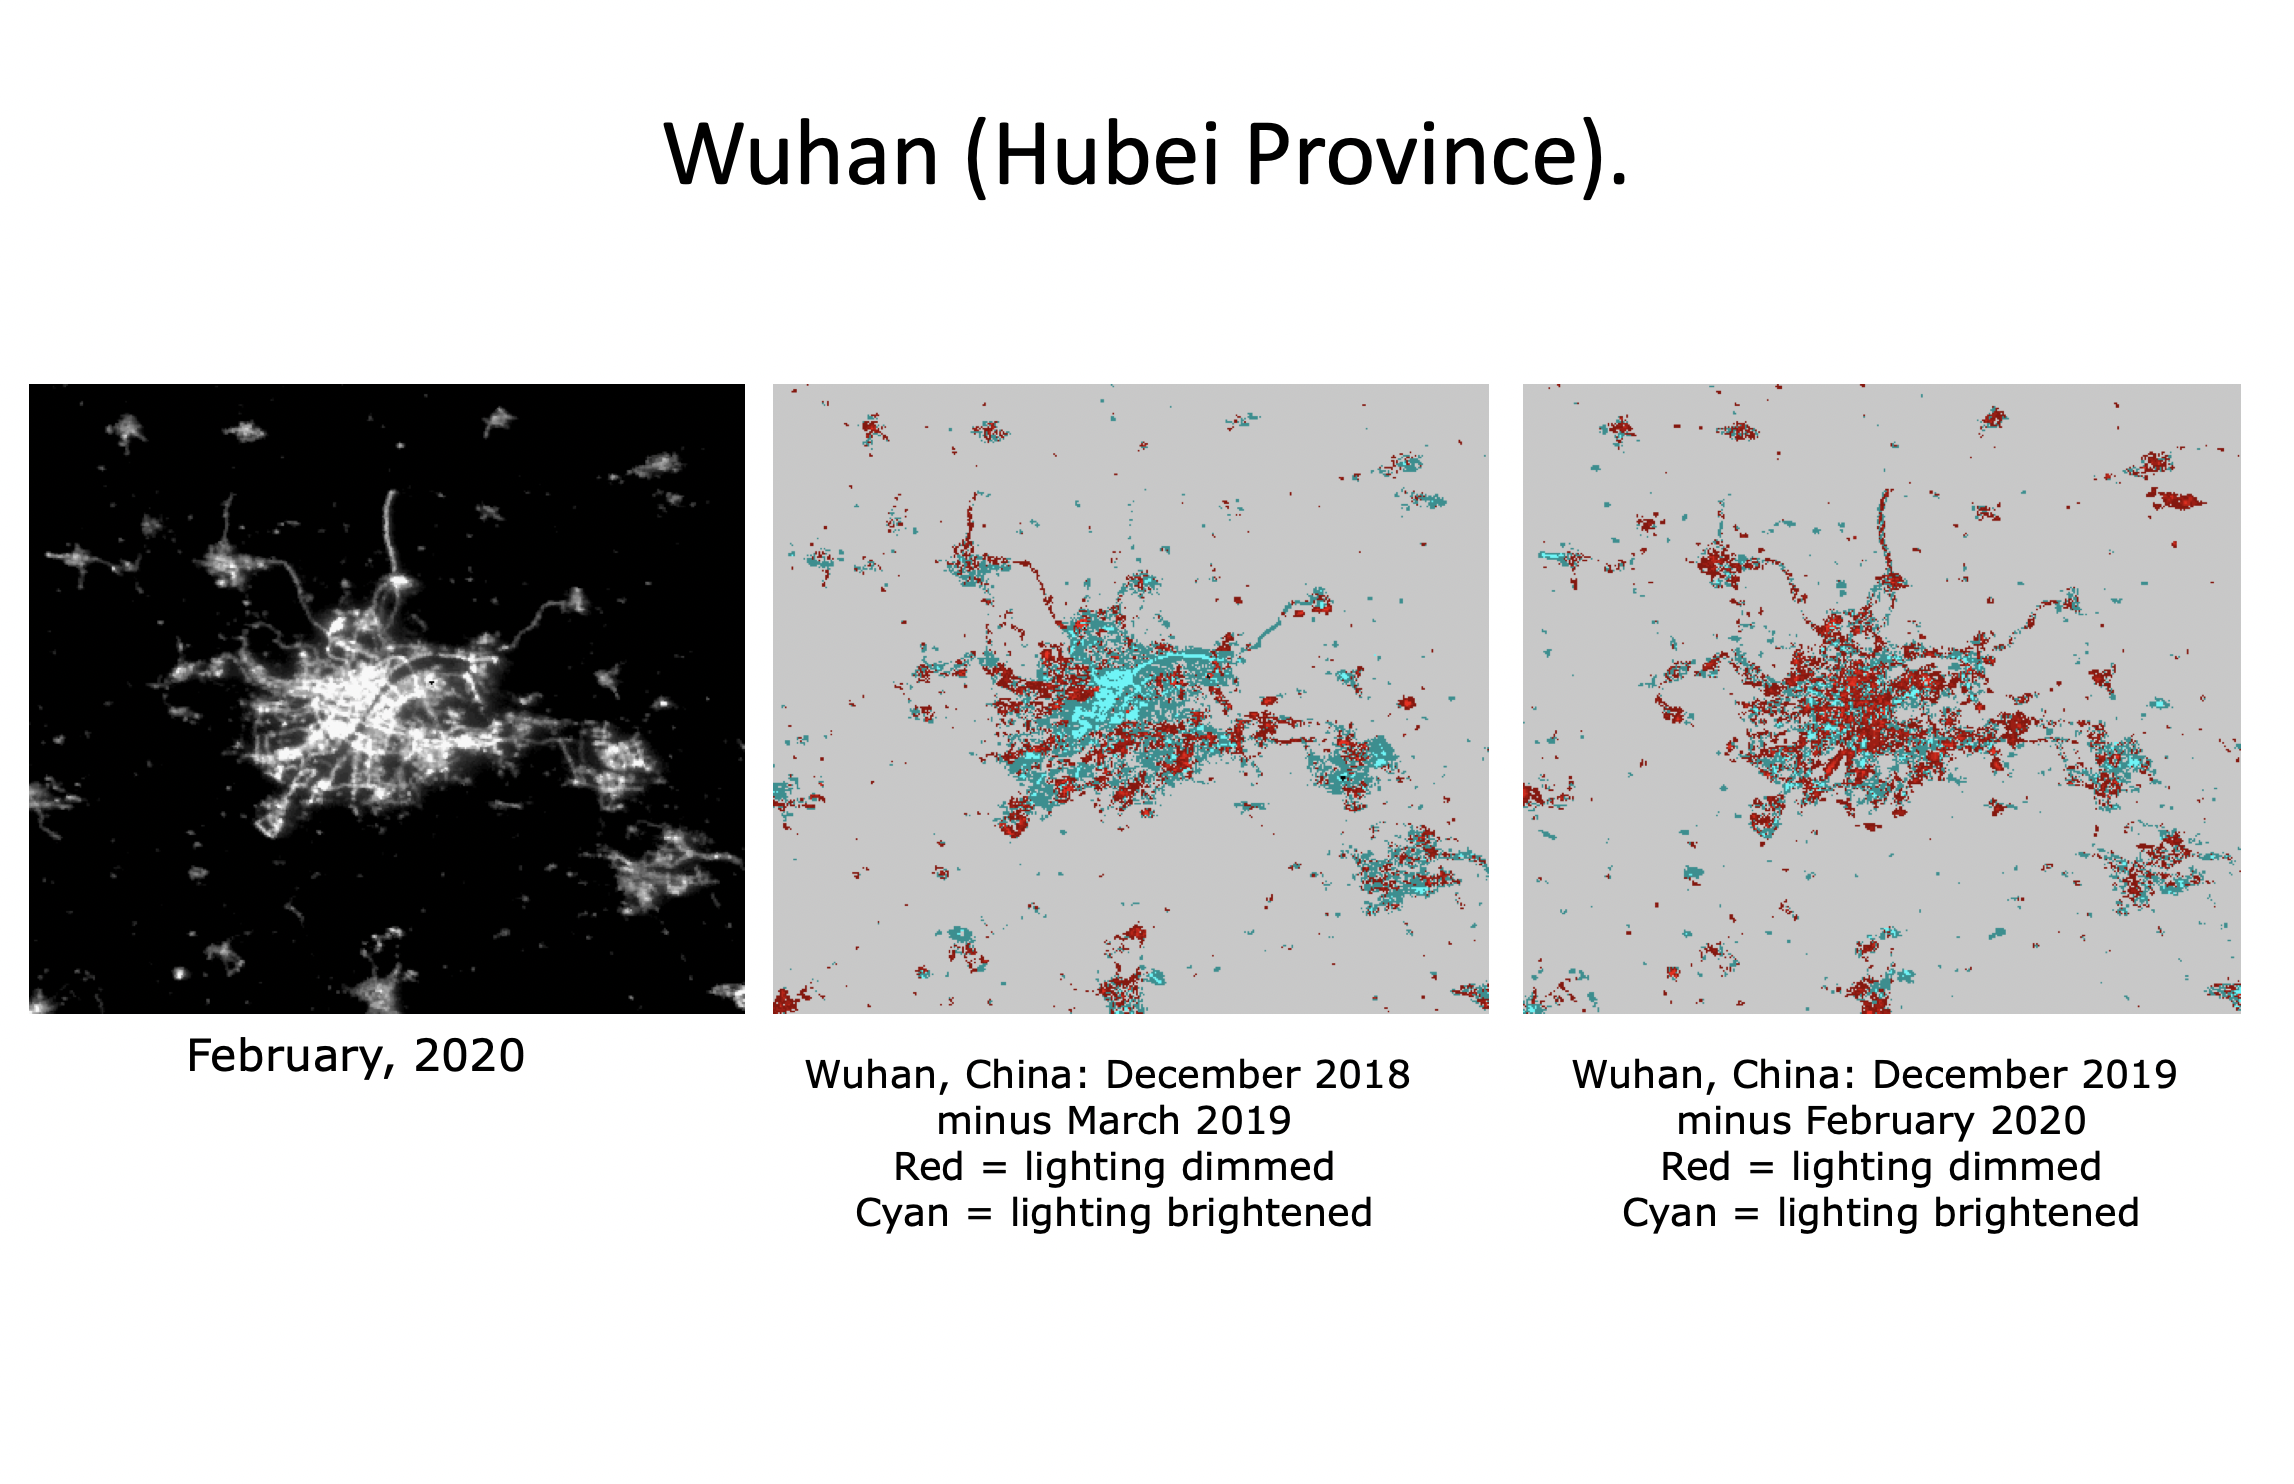 Figure 1. Light levels in Wuhan compared with this period last year